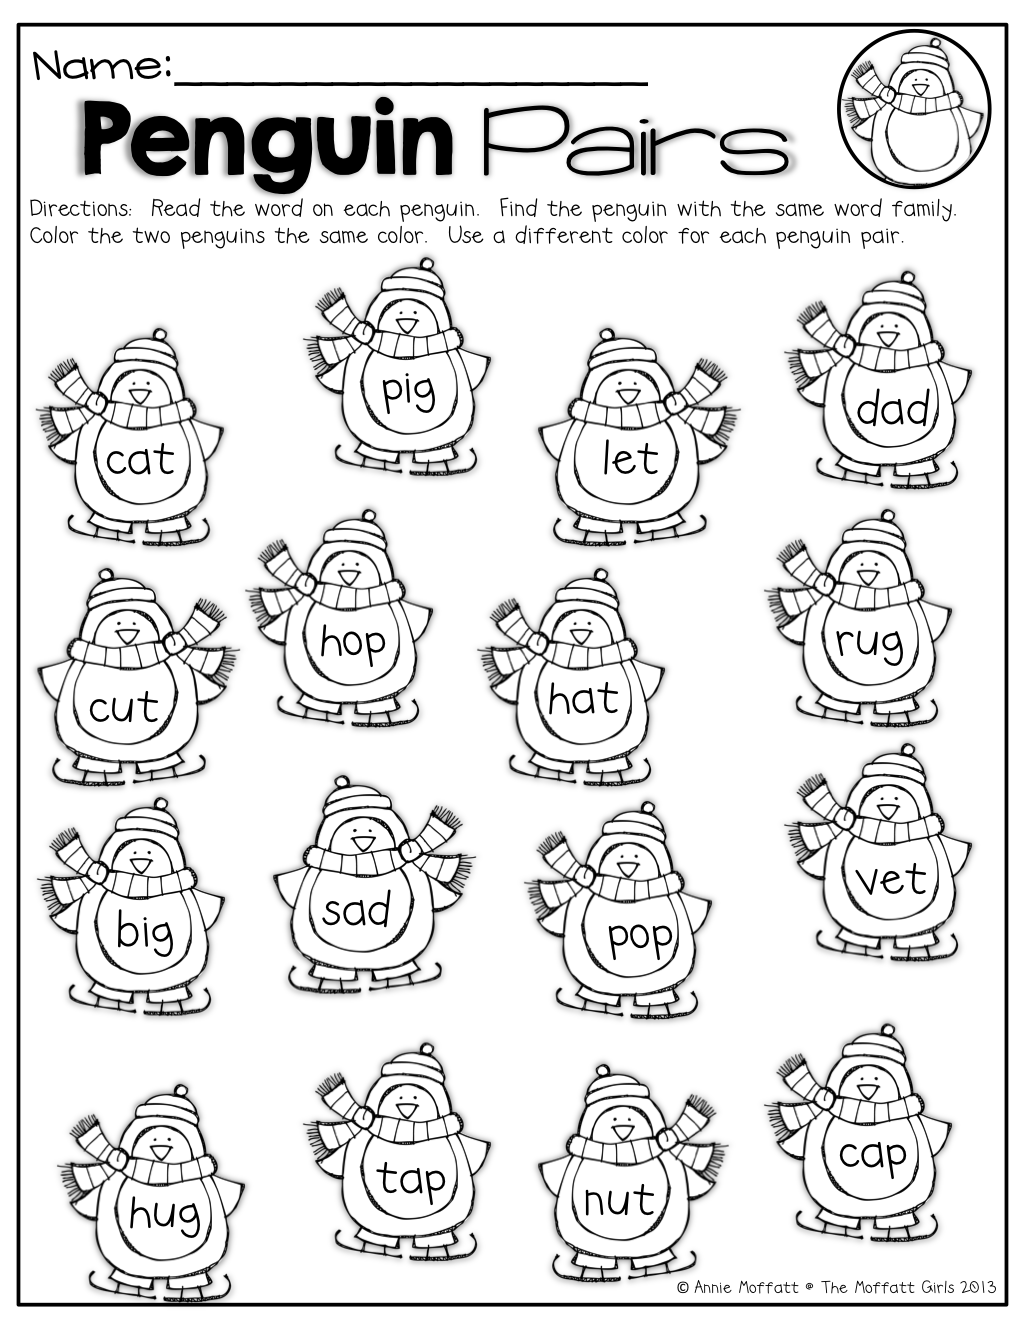 penguin pairs find and color the penguins with the same word family the same color such a fun. Black Bedroom Furniture Sets. Home Design Ideas